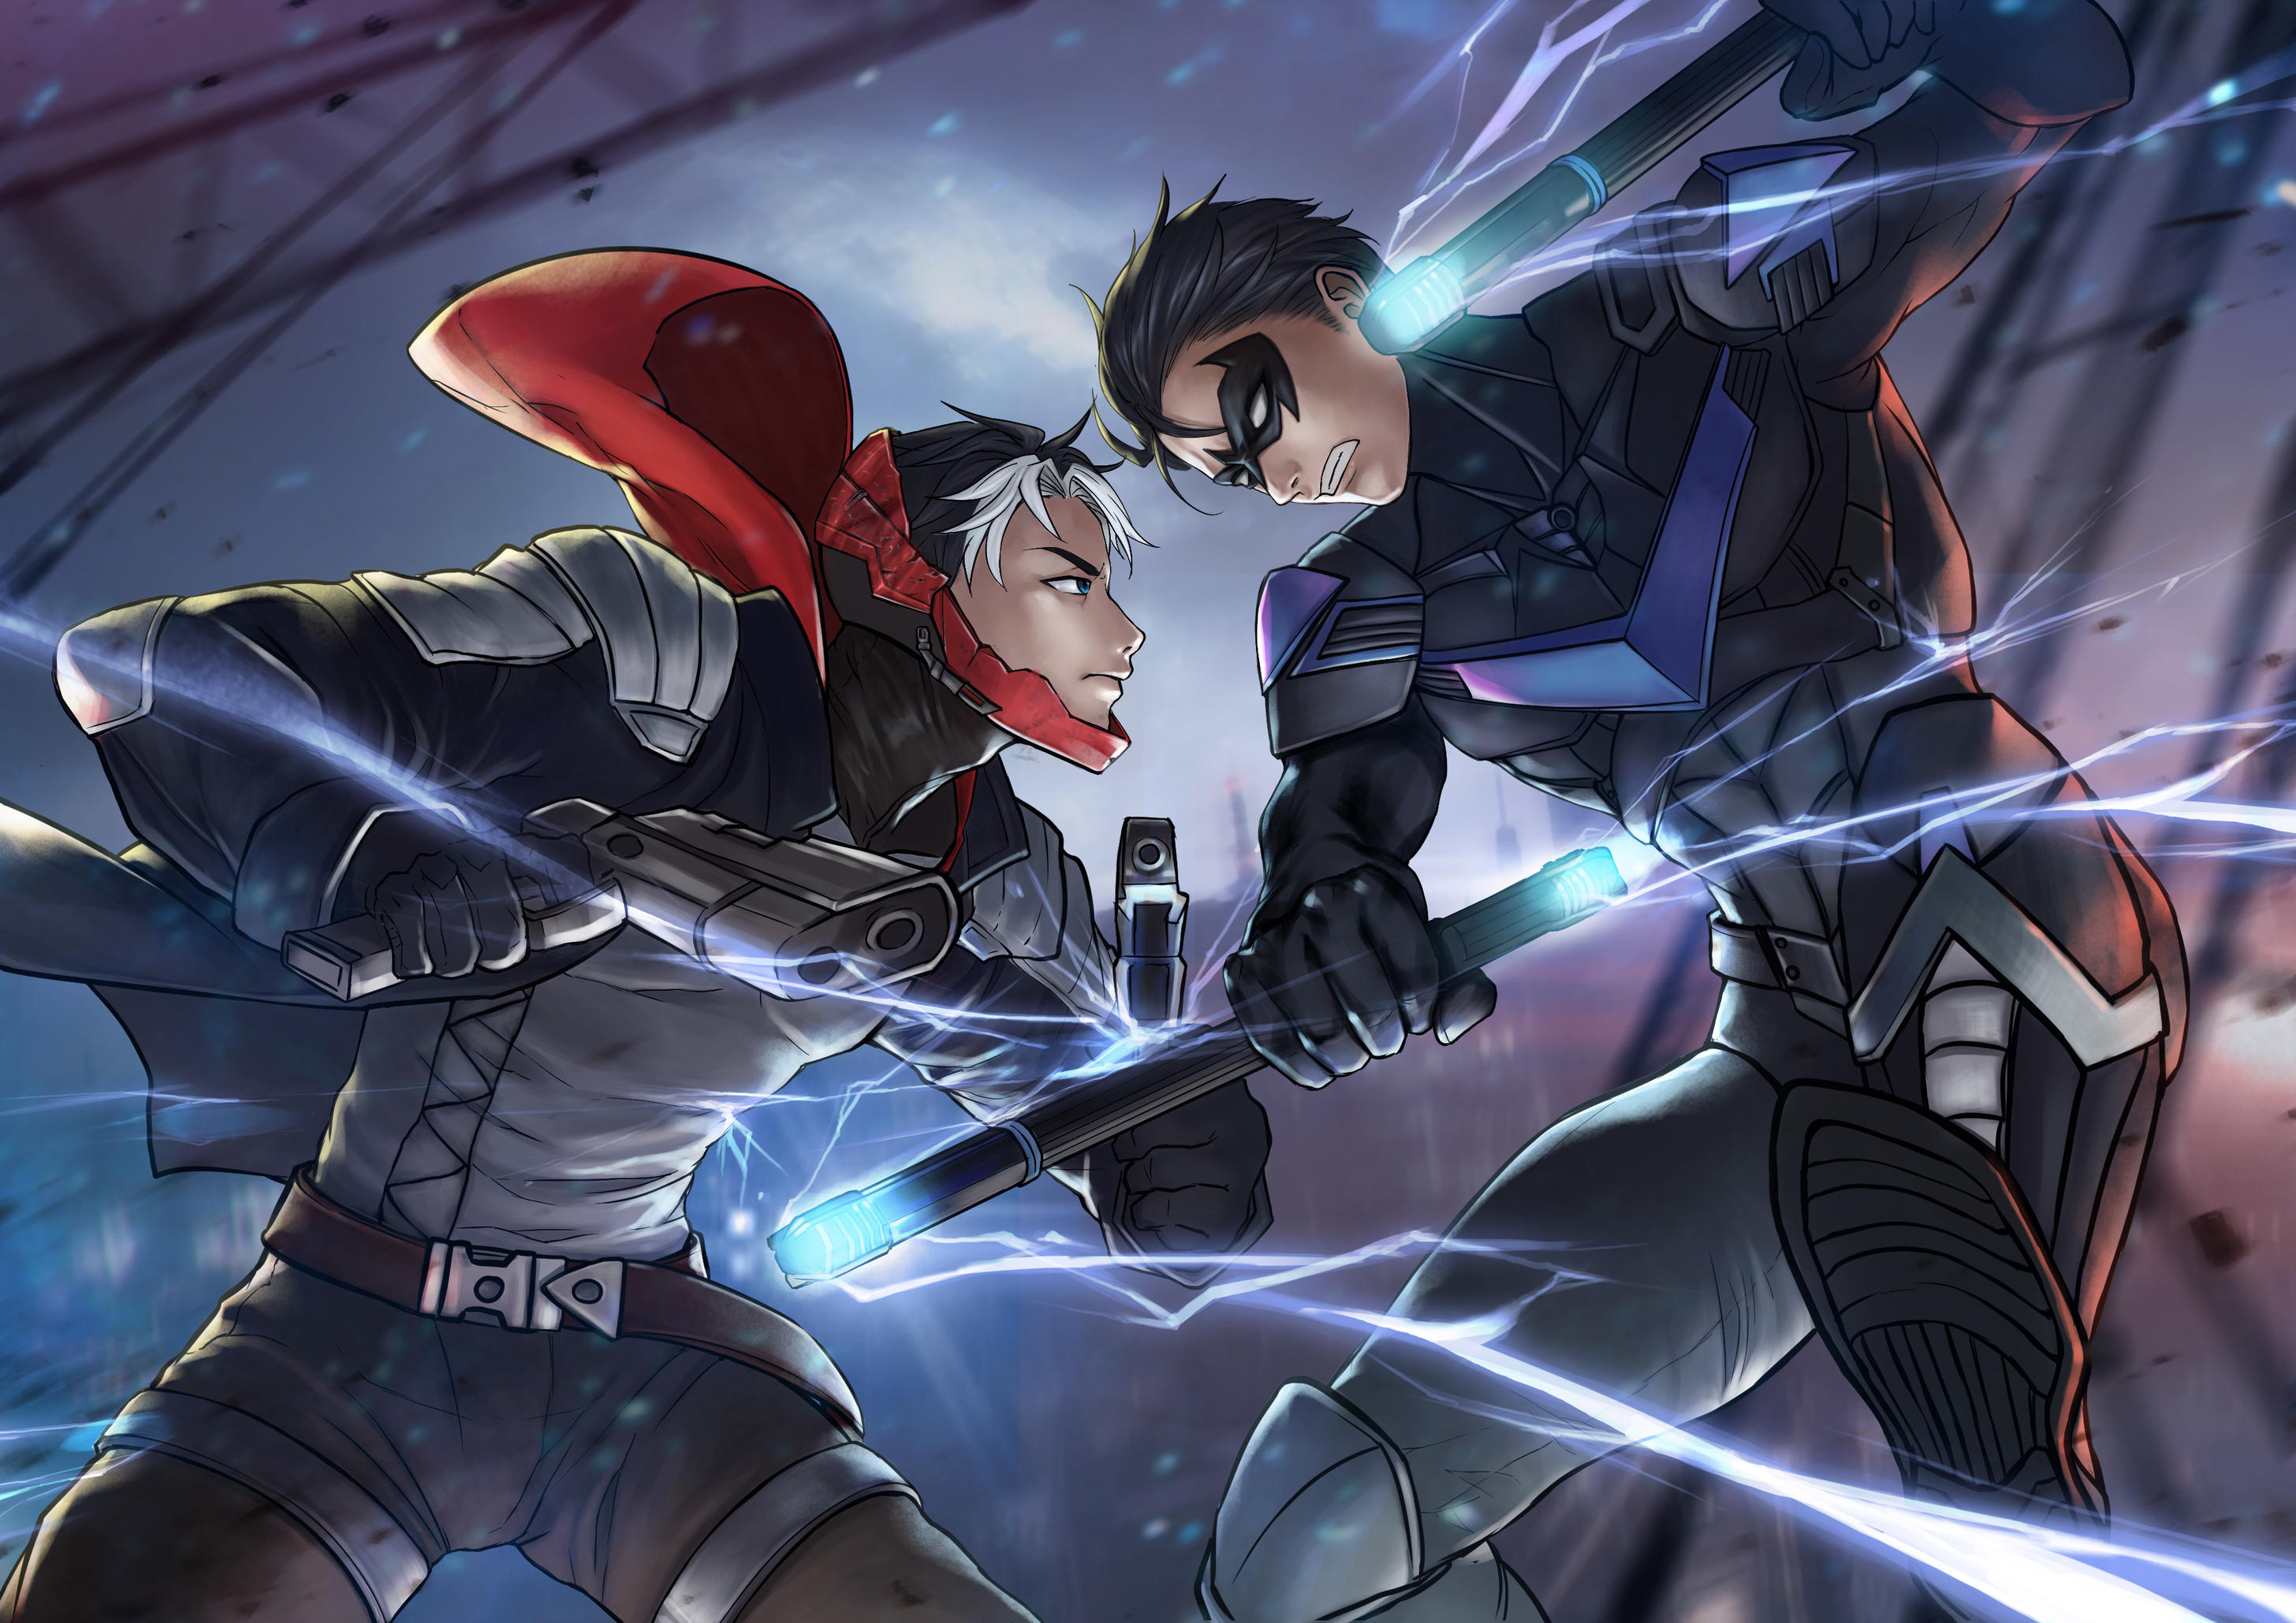 1366x768 Red Hood Vs Nightwing 1366x768 Resolution Hd 4k Wallpapers Images Backgrounds Photos And Pictures